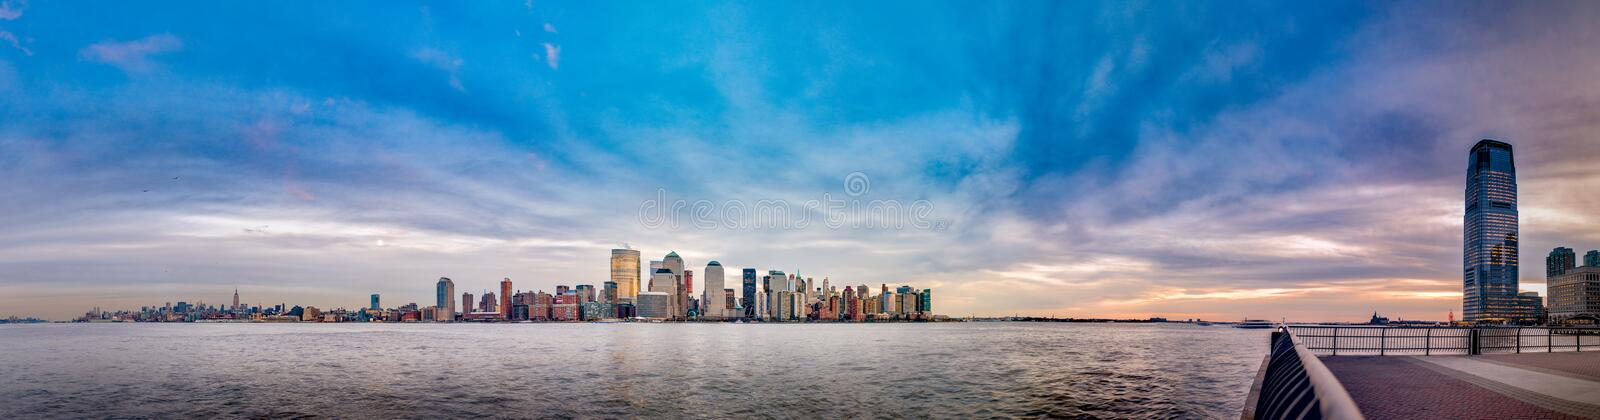 Skyline de Manhattan como visto de Jersey City, New York, Estados Unidos da América imagens de stock